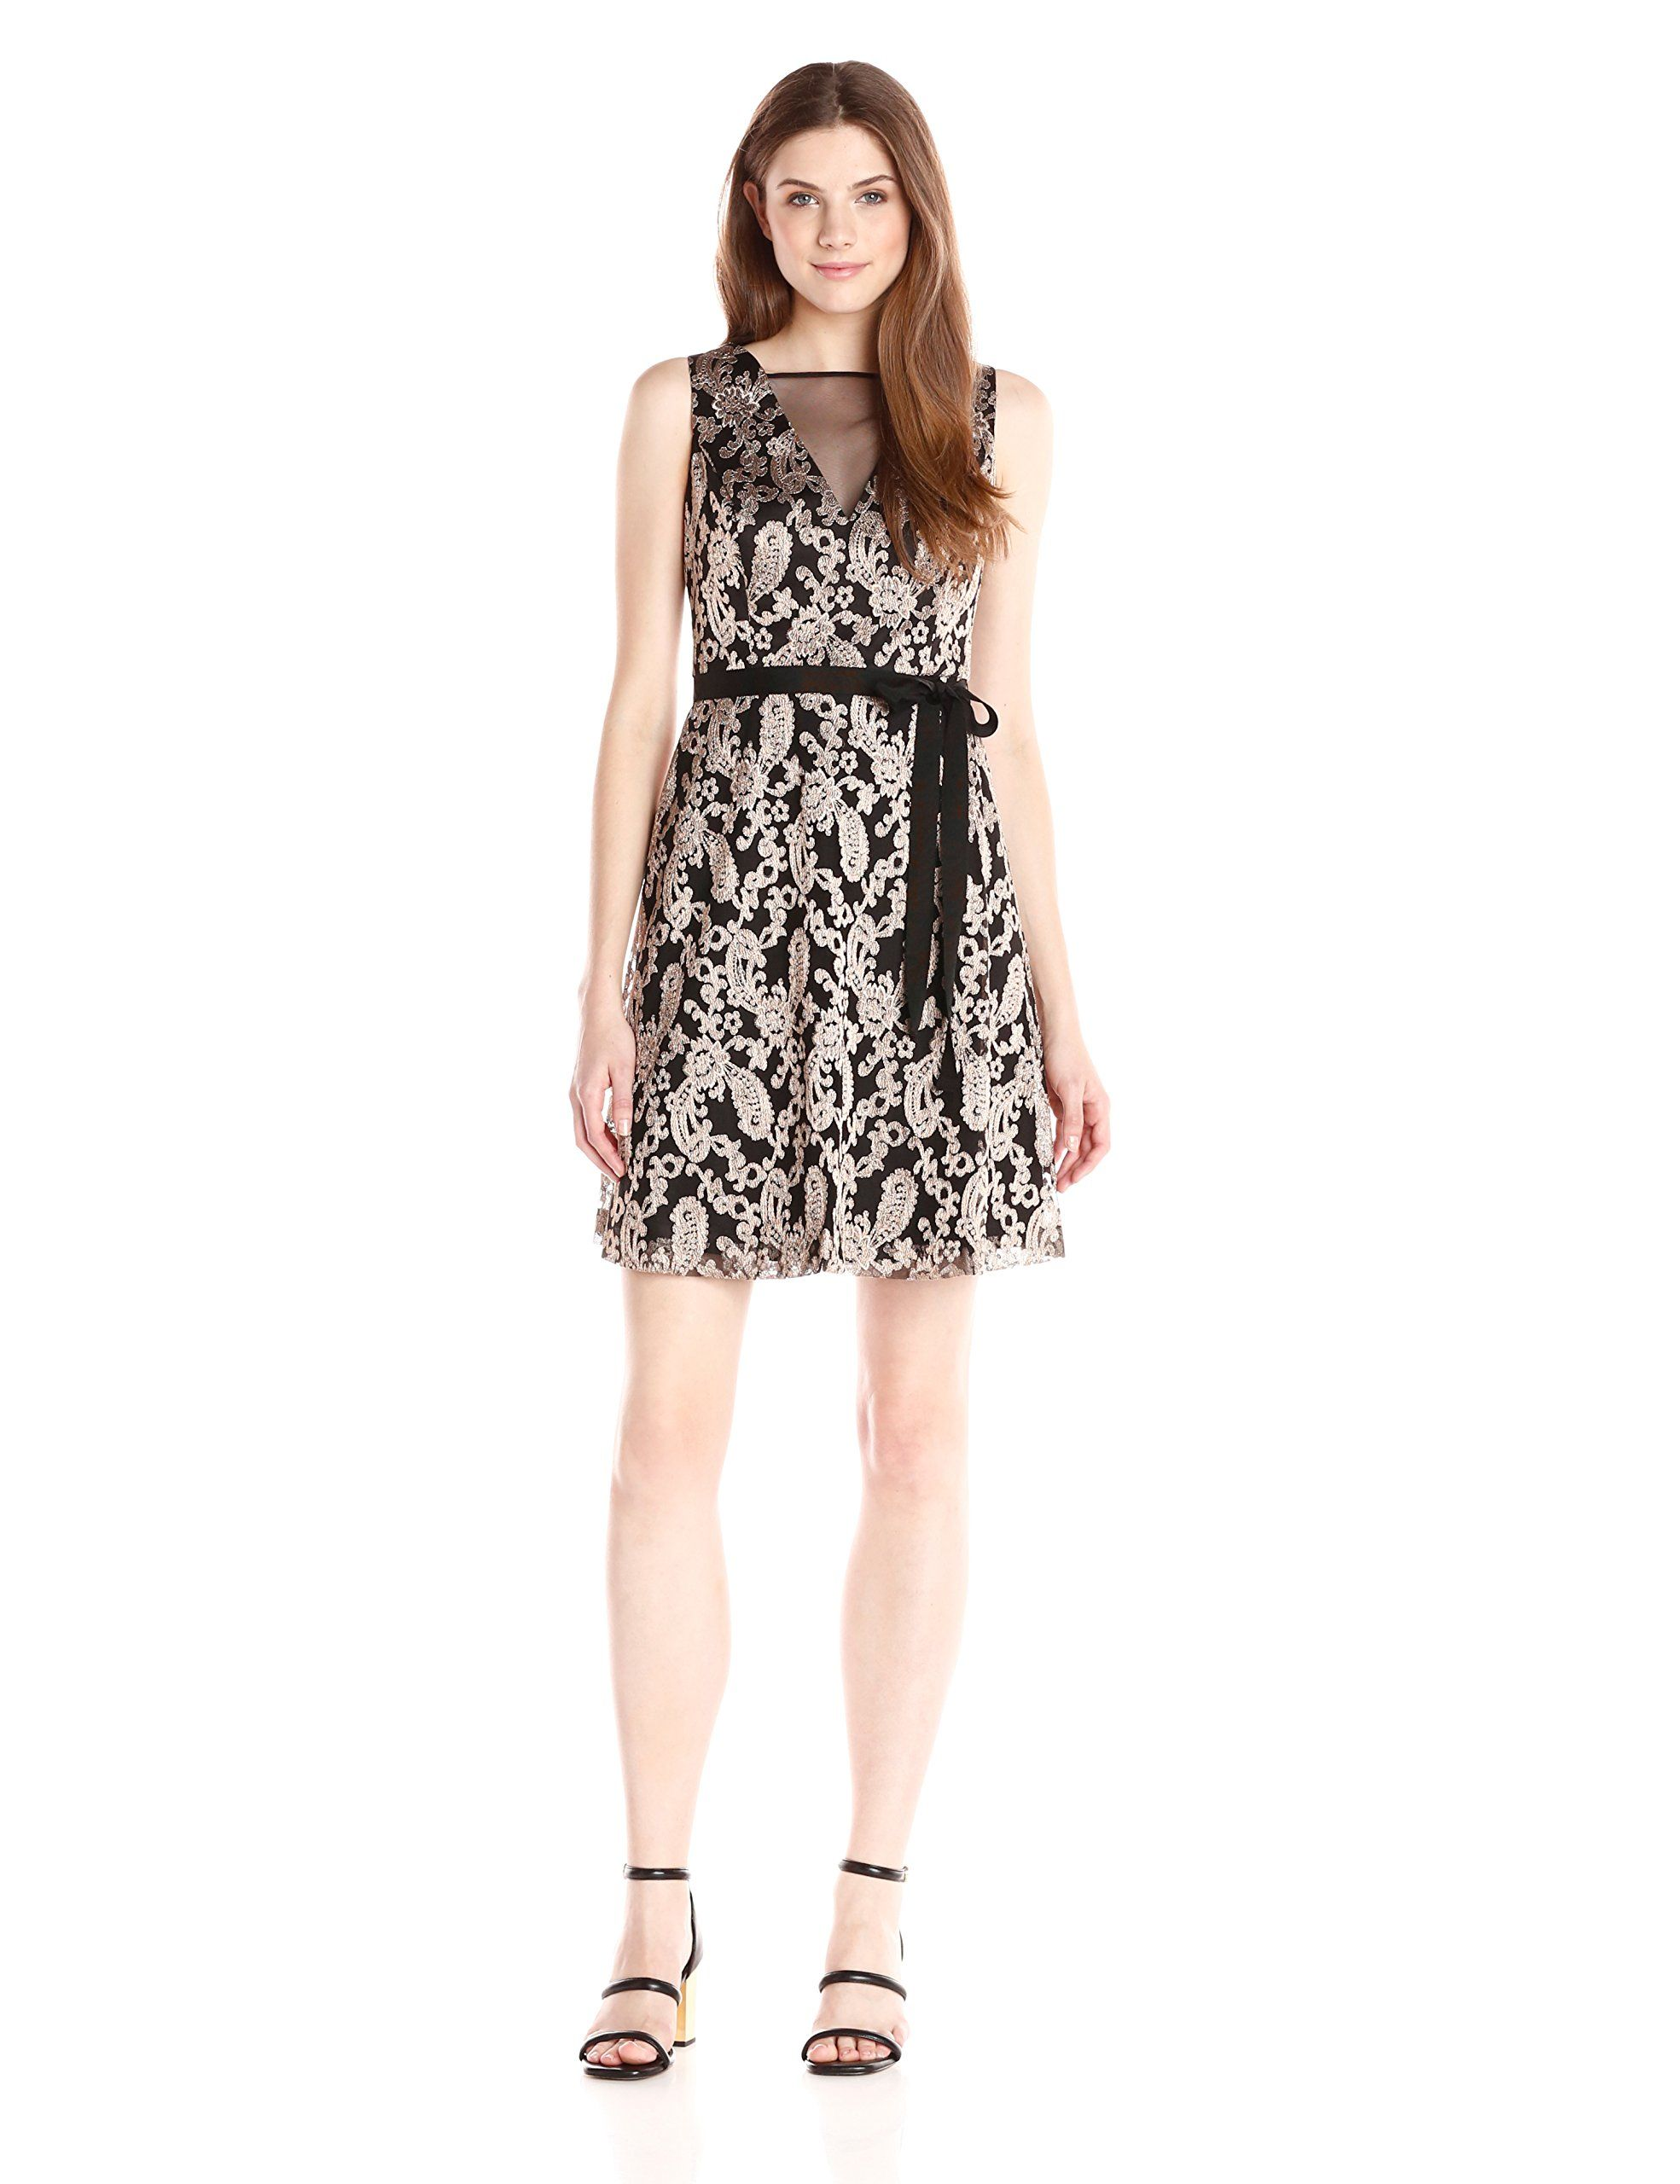 Jessica simpson womenus metallic embellished party dress with